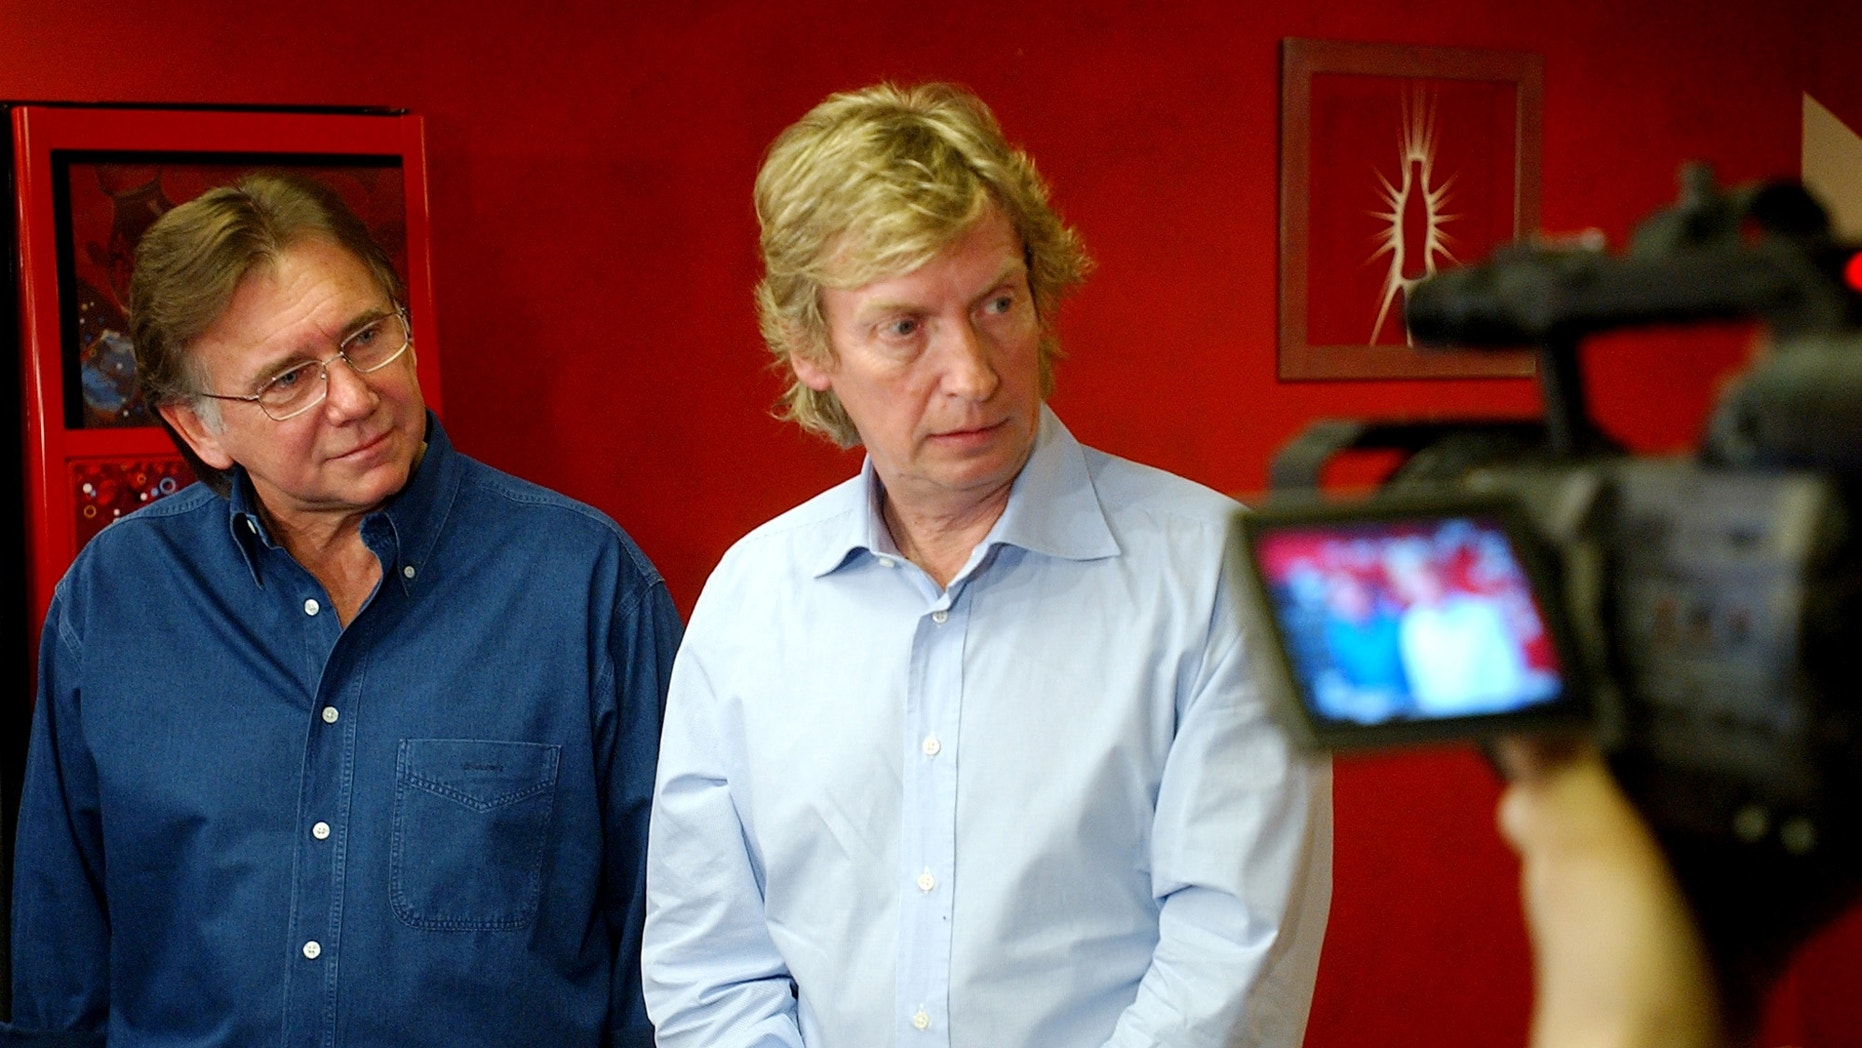 """This March 15, 2005 file photo shows former """"American Idol"""" producers Ken Warwick, left, and Nigel Lythgoe during a news conference in Los Angeles."""